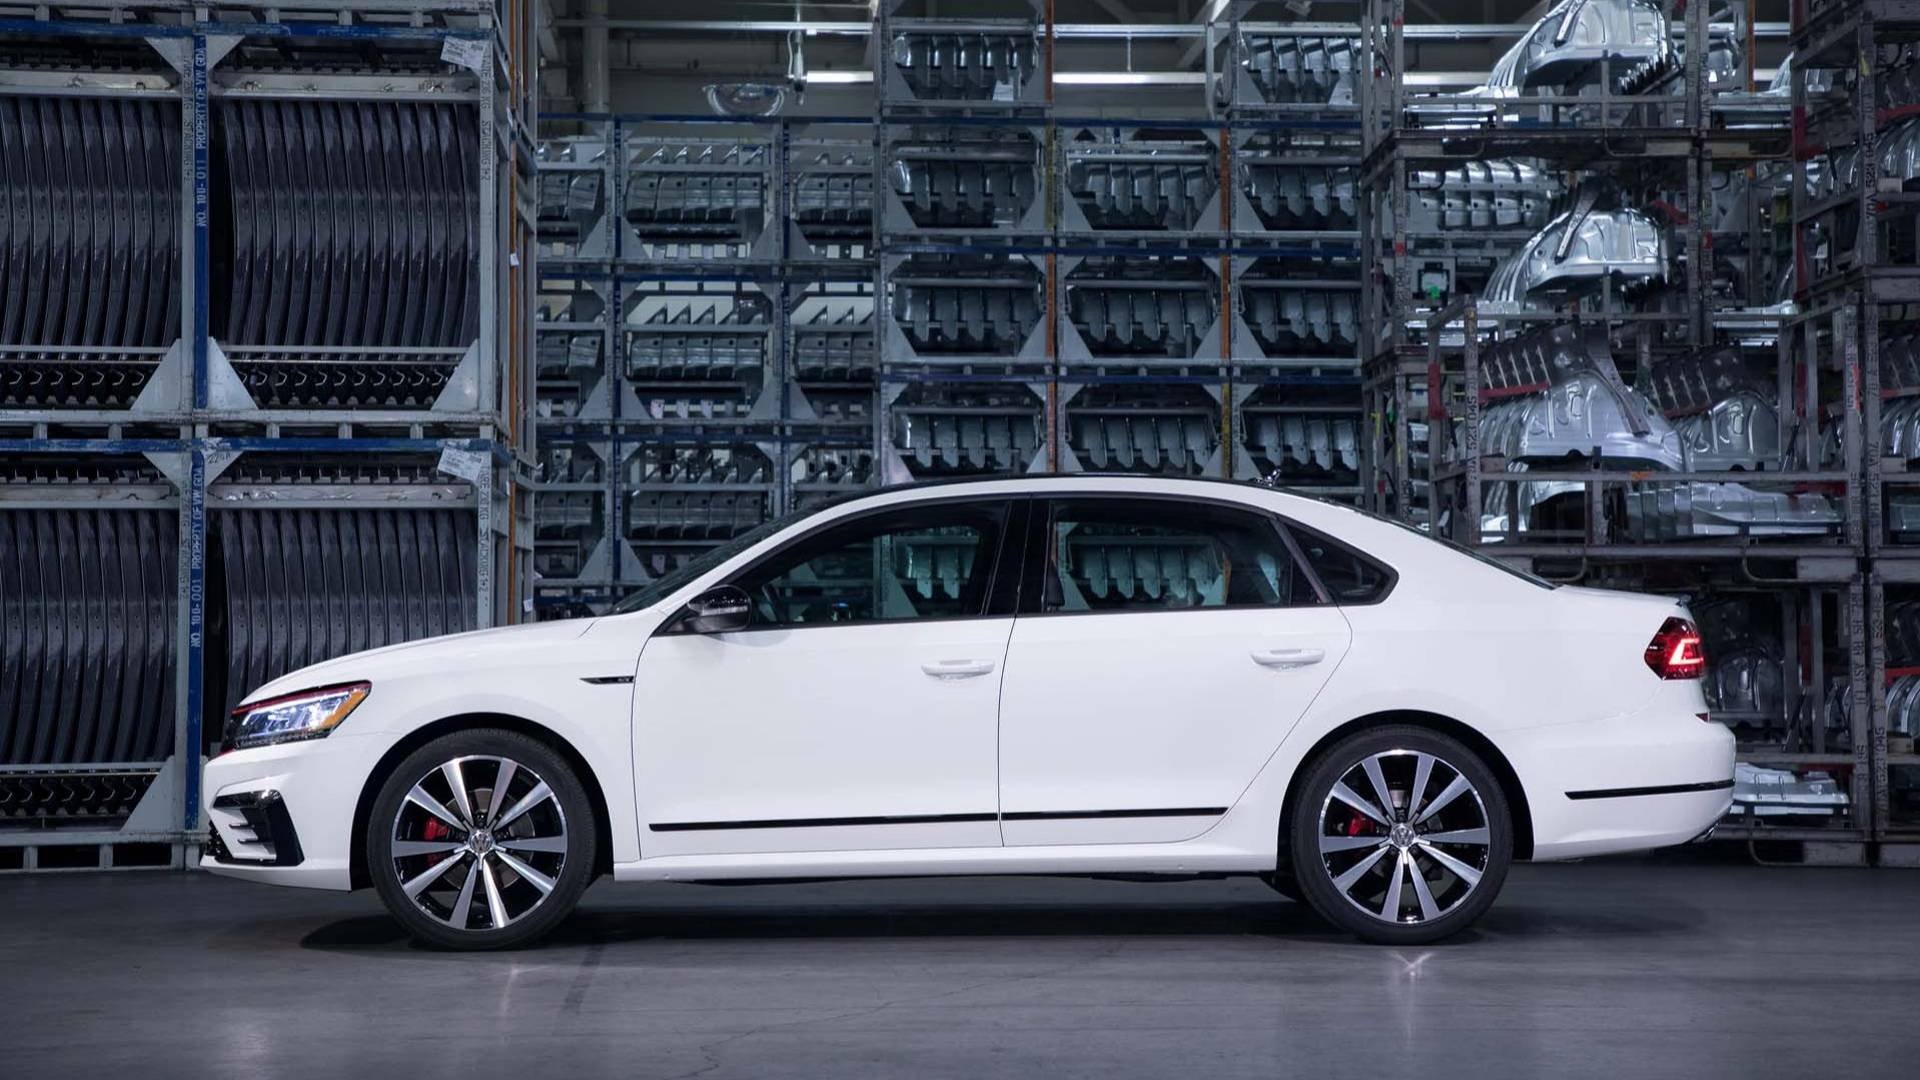 16 Best 2020 VW Passat Tdi Price